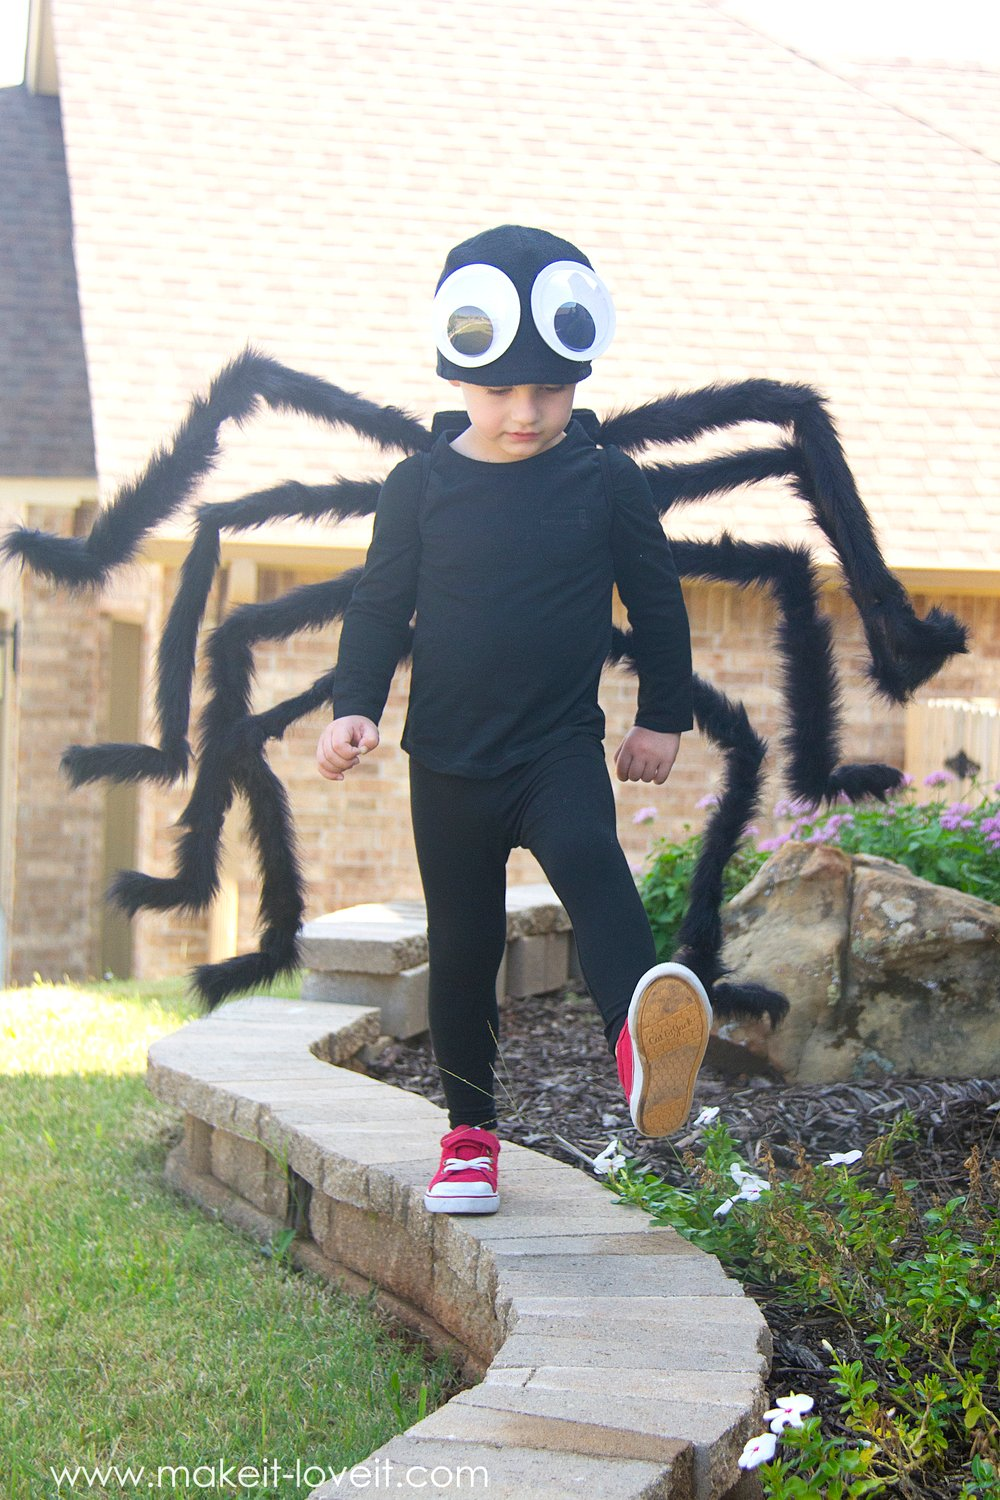 Spider Costume WINNER (...plus a sneak peek!)